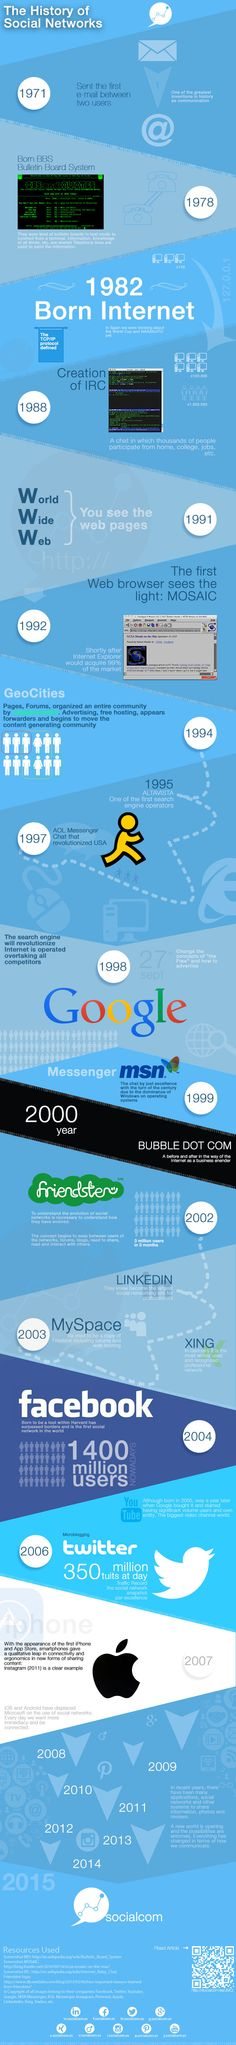 The History of Social Networks